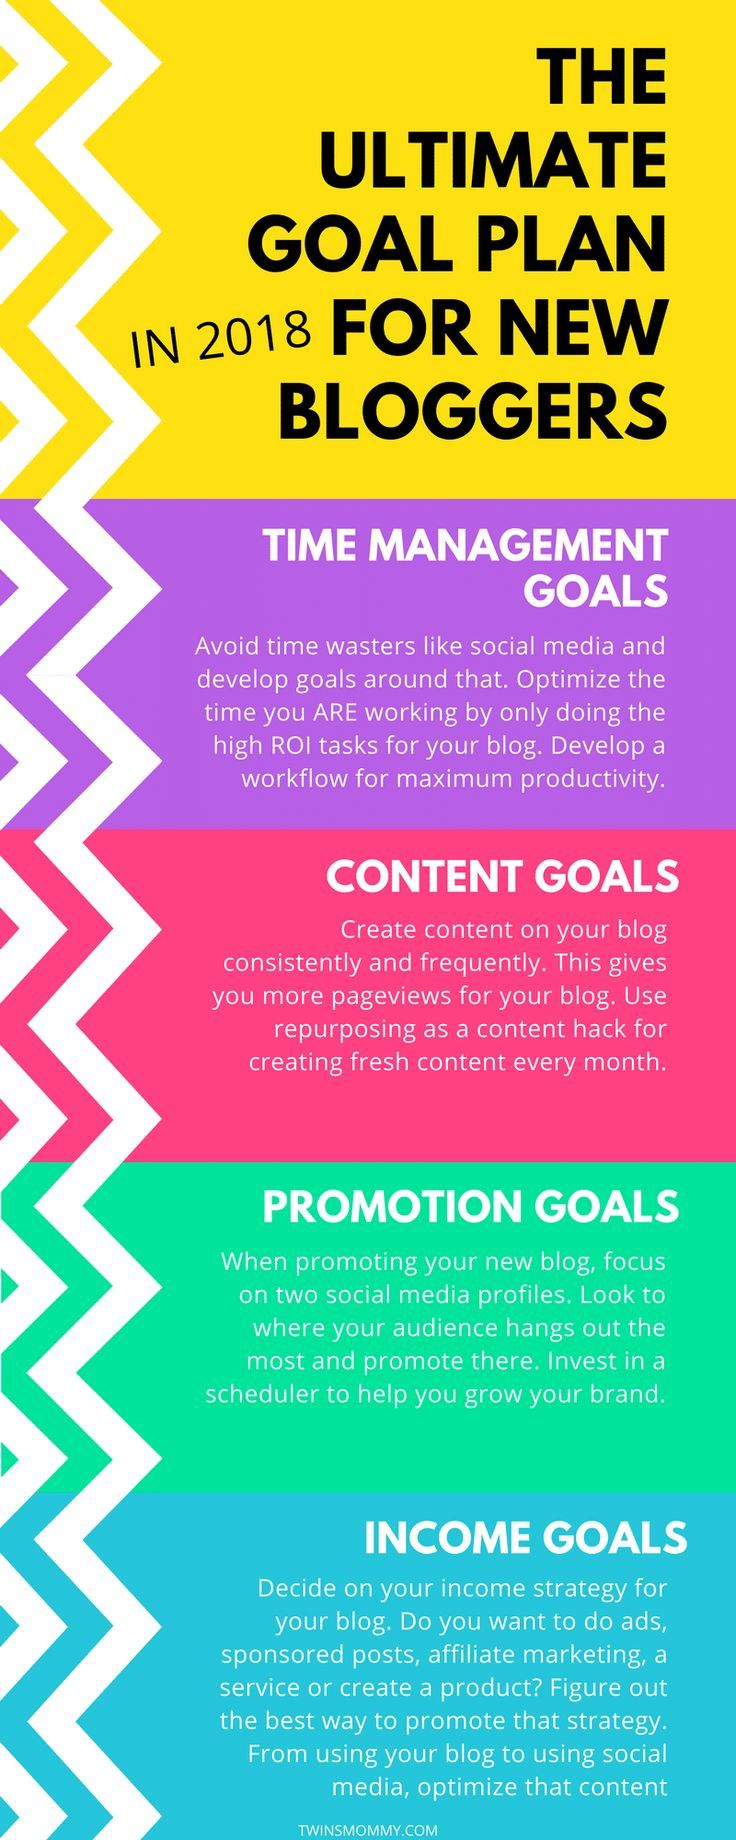 You goal plan for 2018 is here! Deciding on how to grow your business and blog you need goal planning ideas. Learn effective time management tips, promotion strategies and how to make money blogging goals